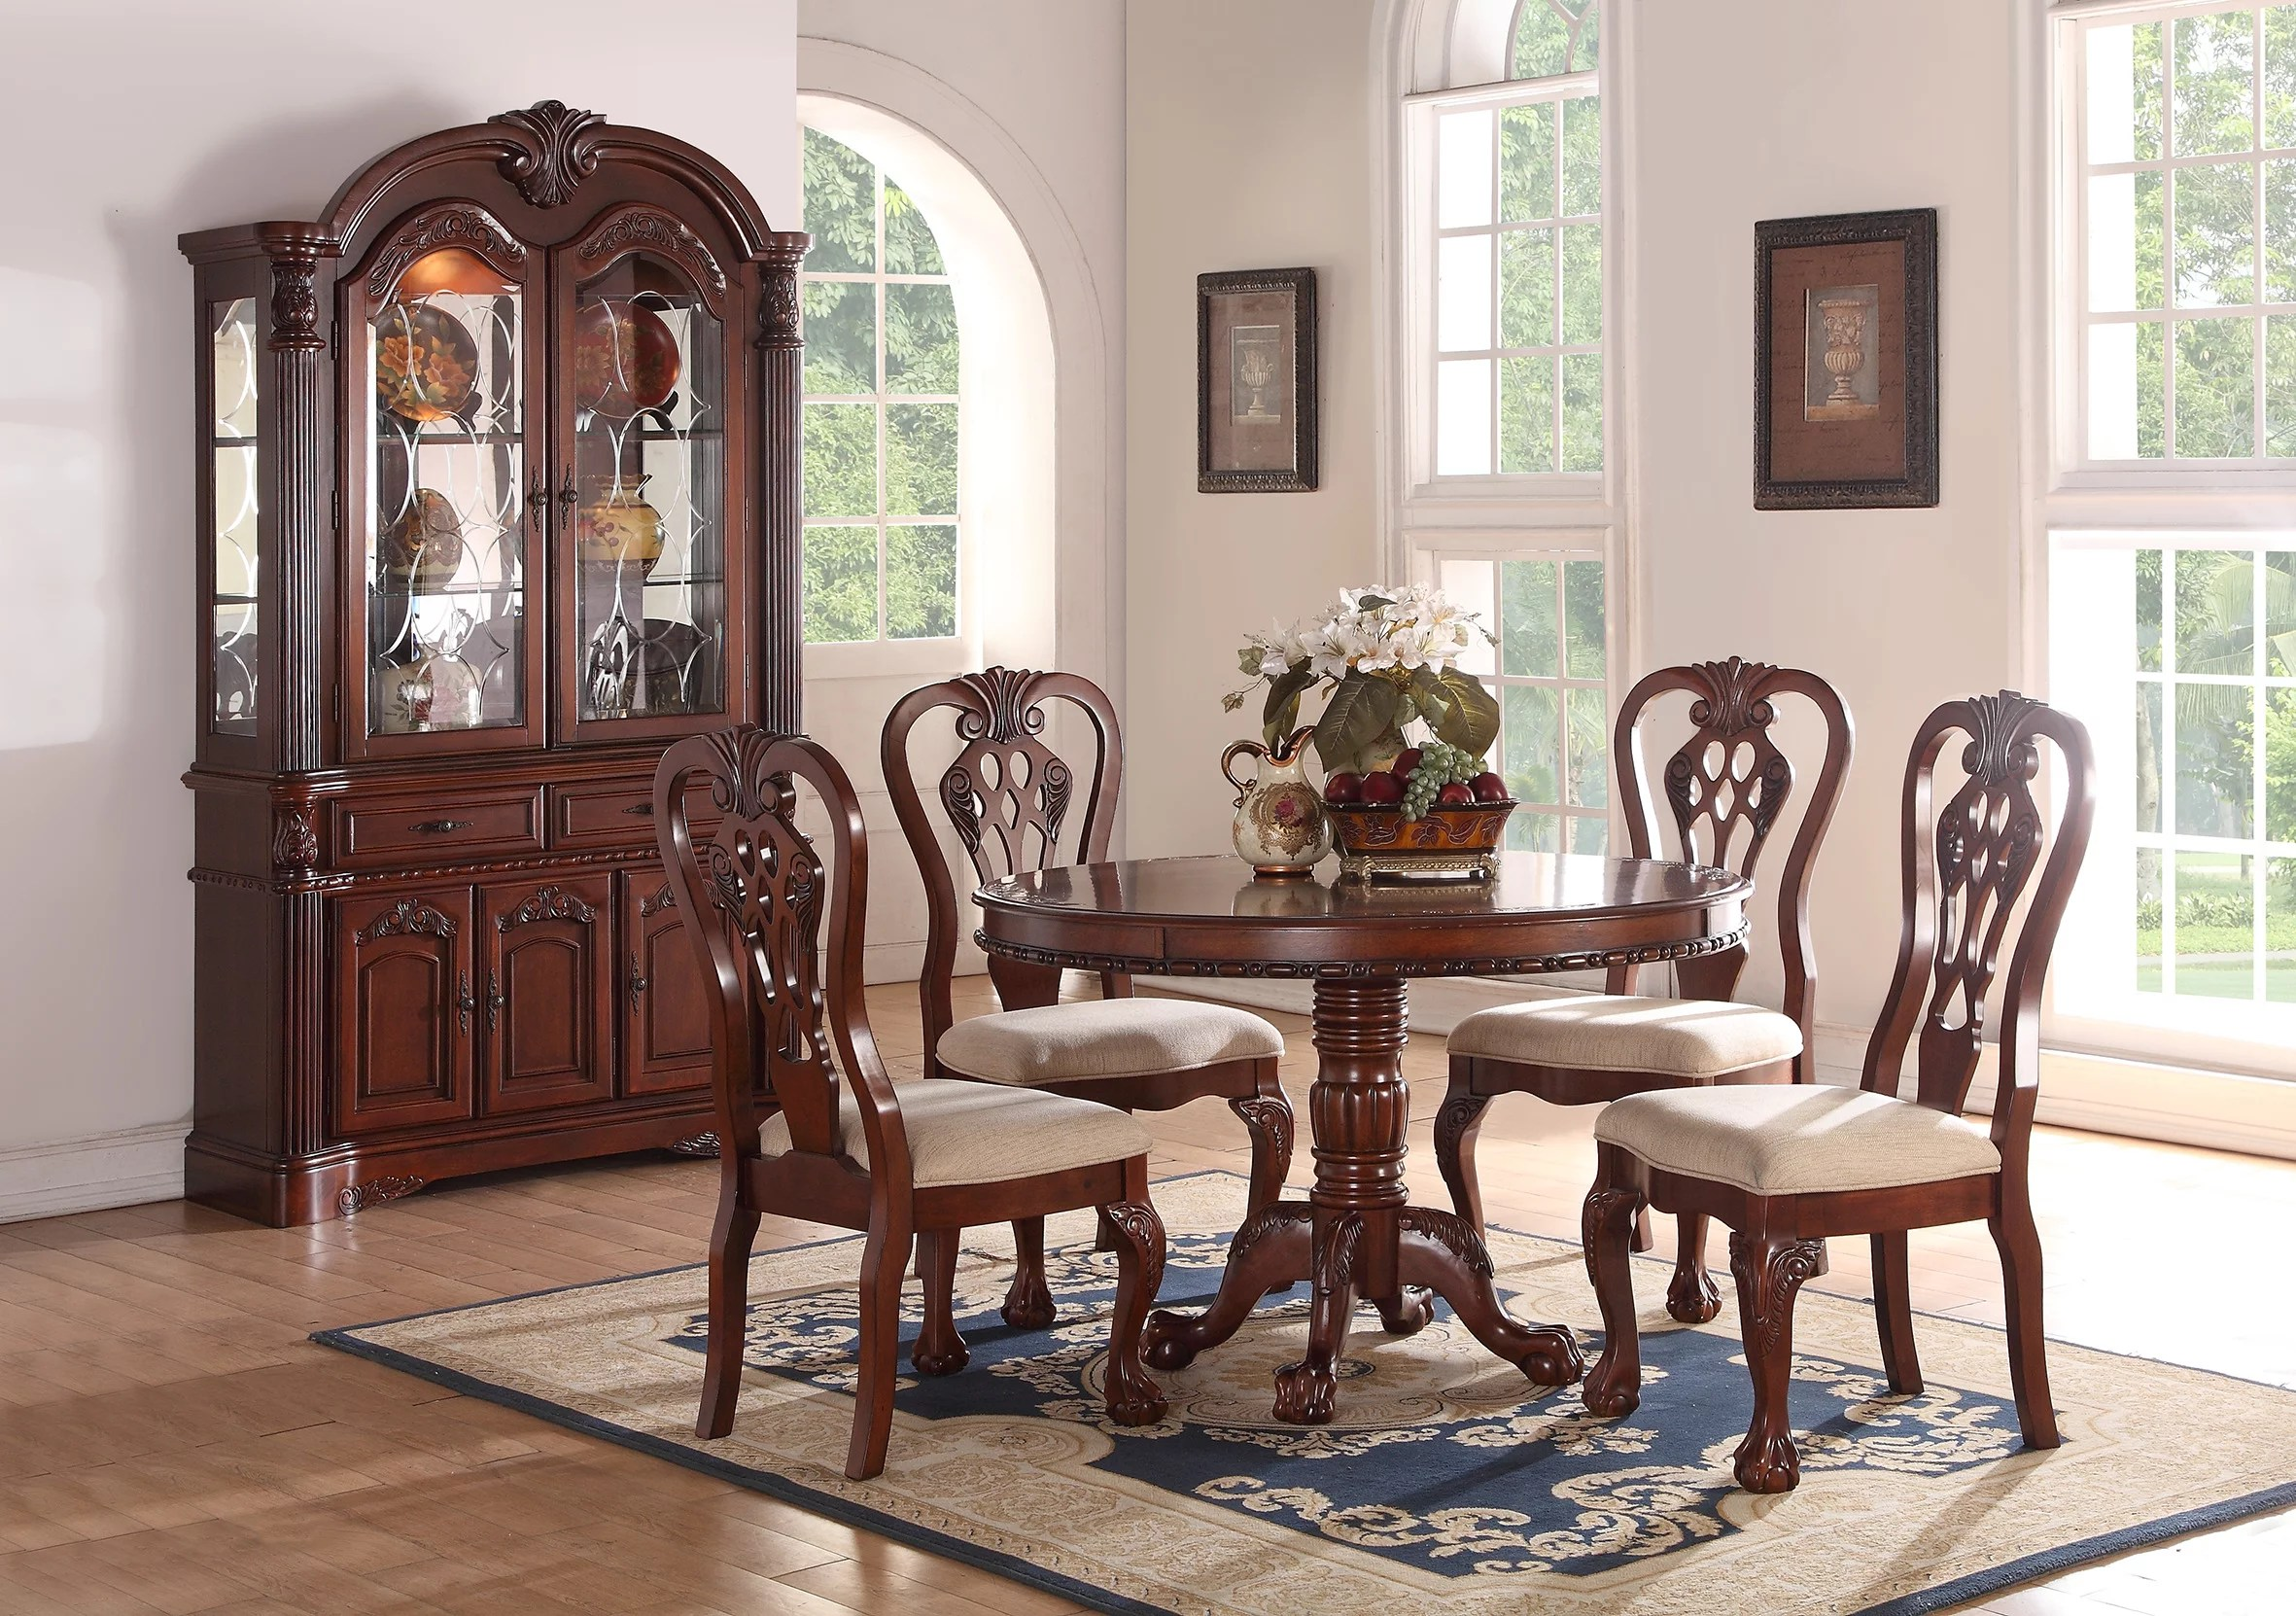 round living room set best ceiling lights for in india formal traditional dining 5pc cherry wood finish table accent floral pattern chairs crream cushion 4 side walmart com